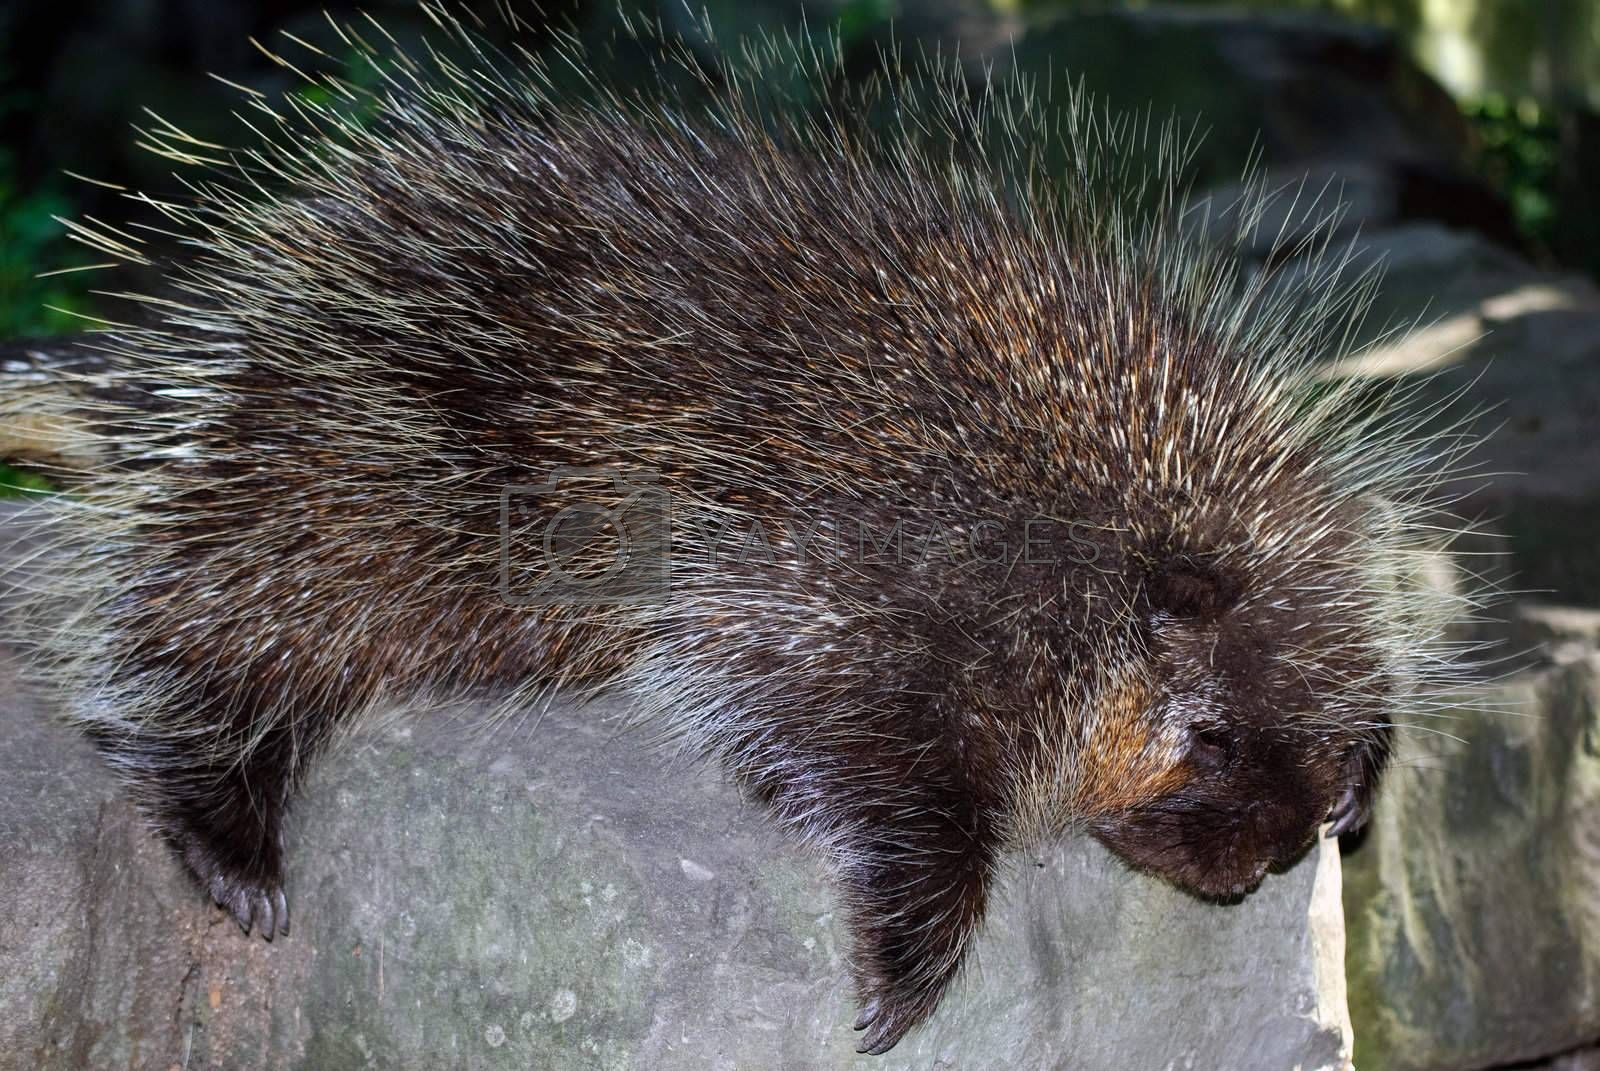 Royalty free image of Porcupine by nialat